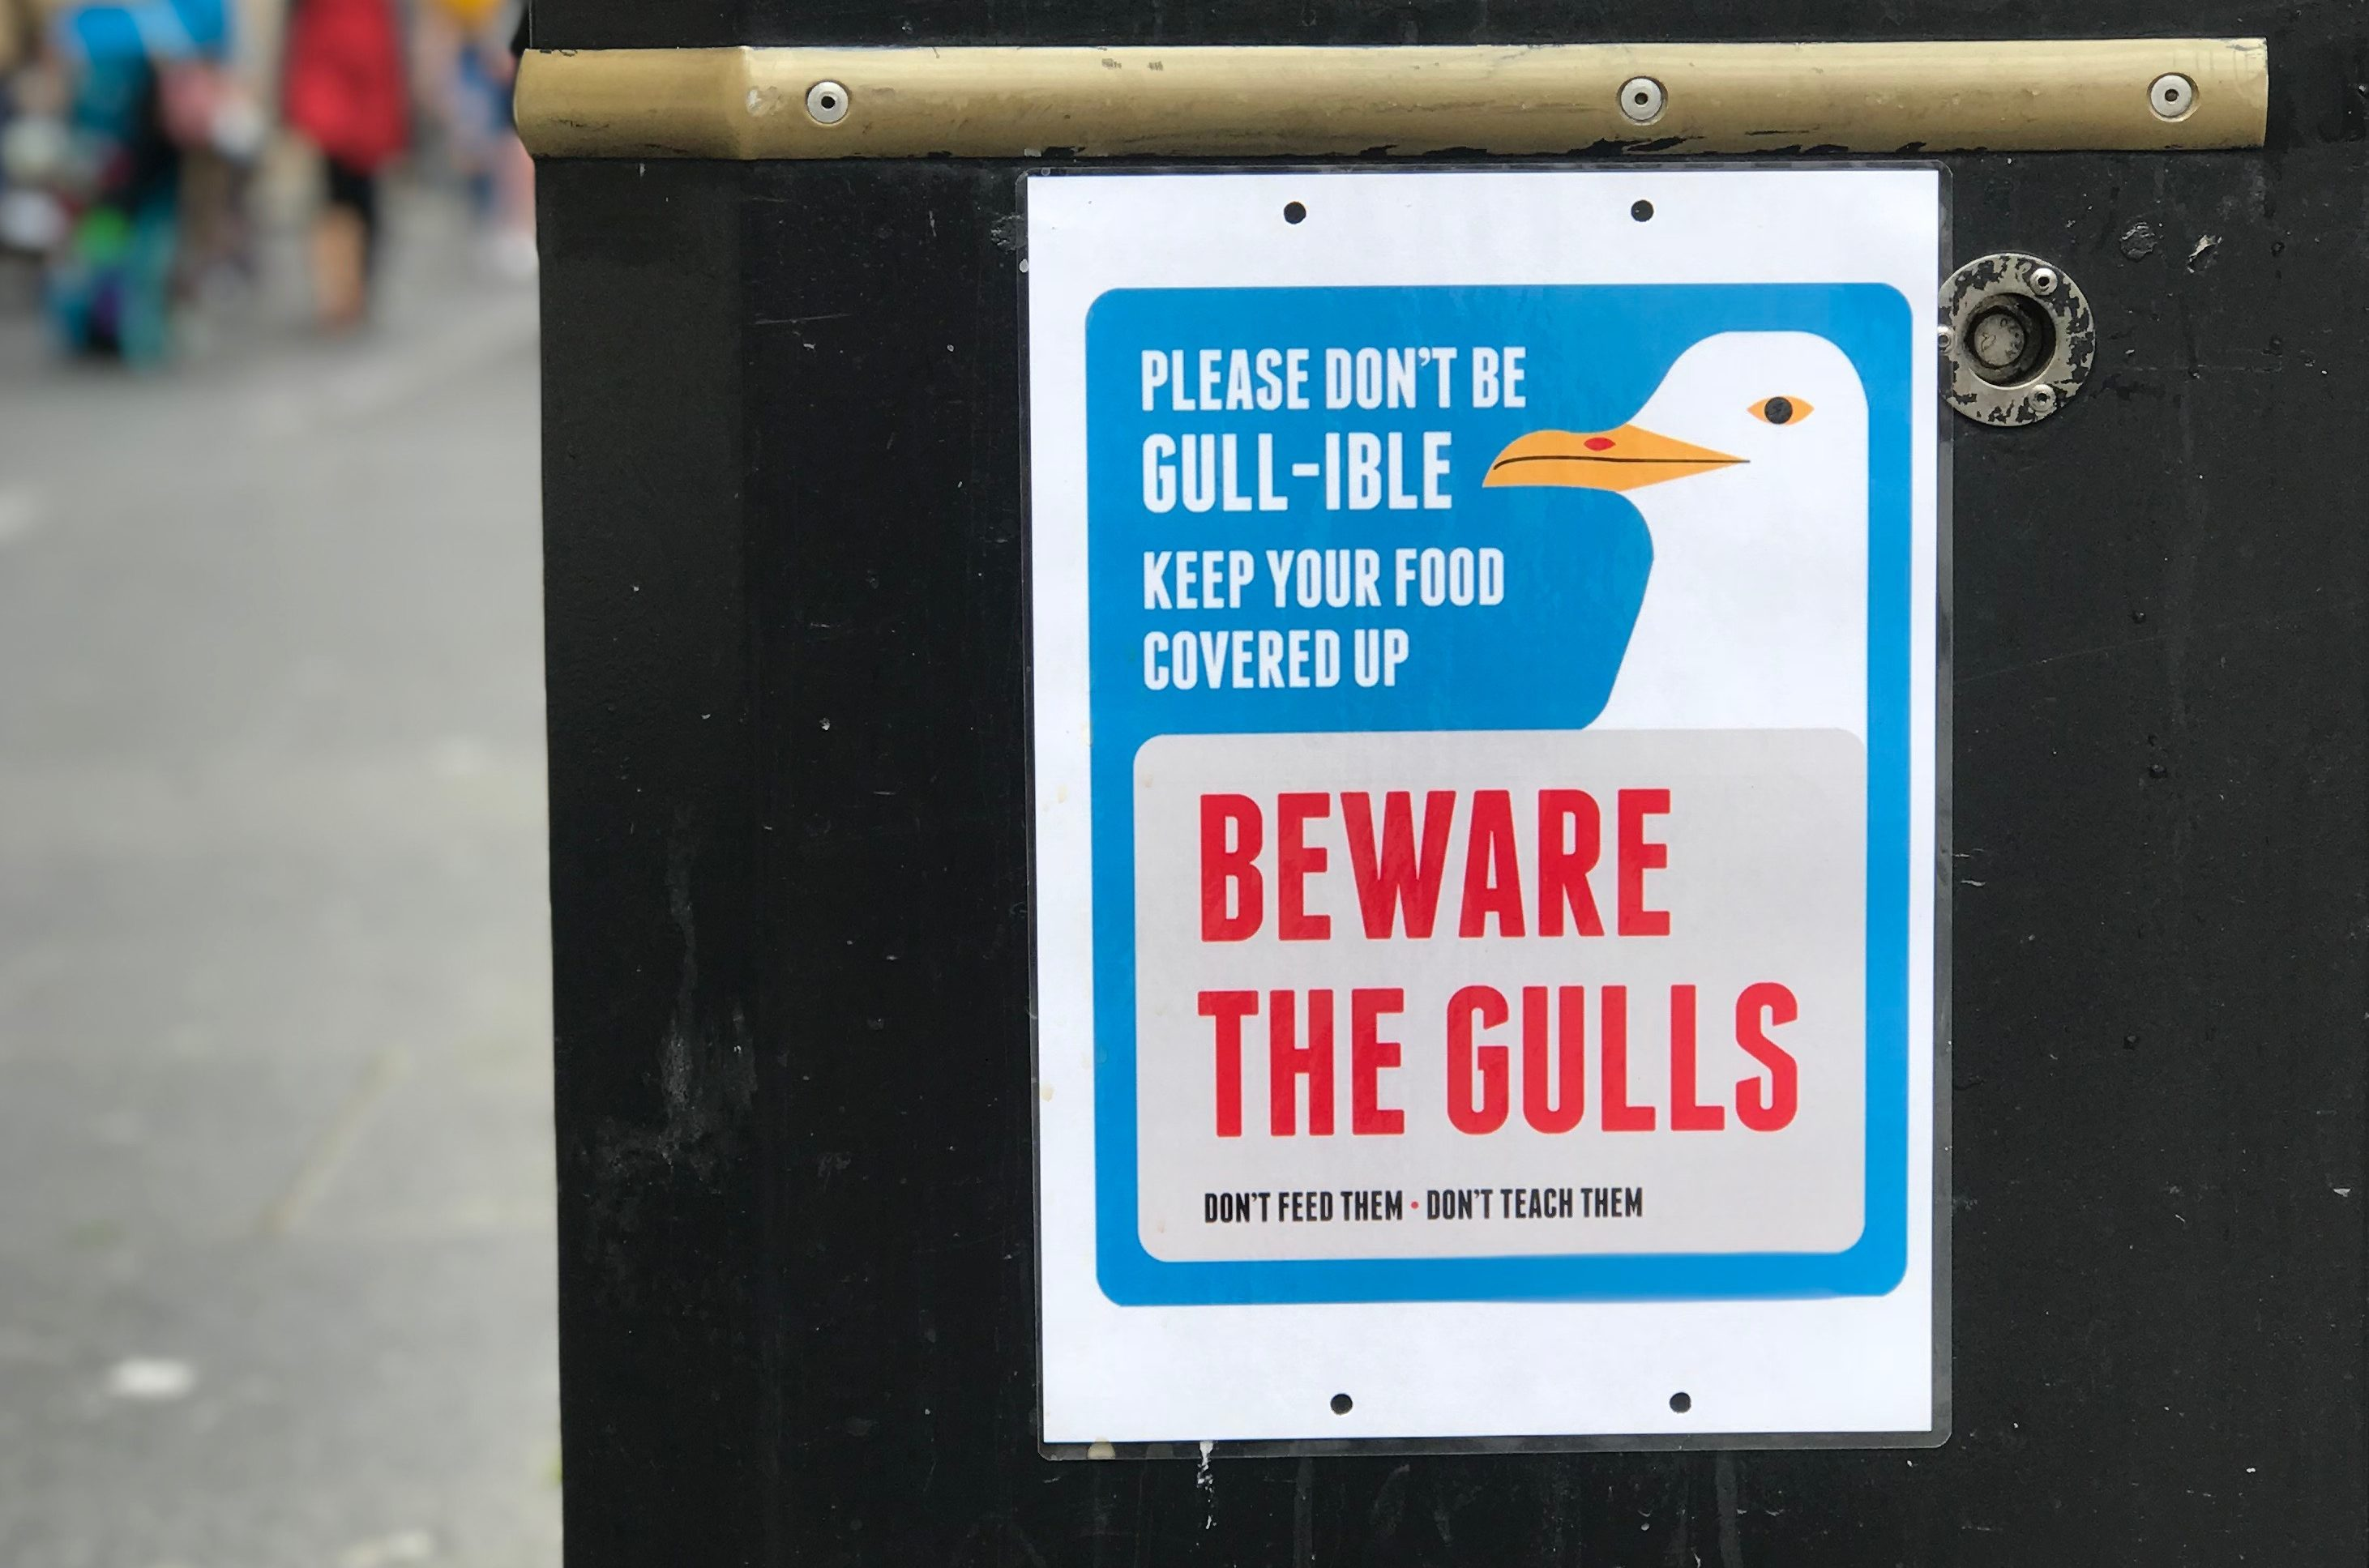 Seagulls are proving a nuisance in Dundee (Jon Brady / DC Thomson)